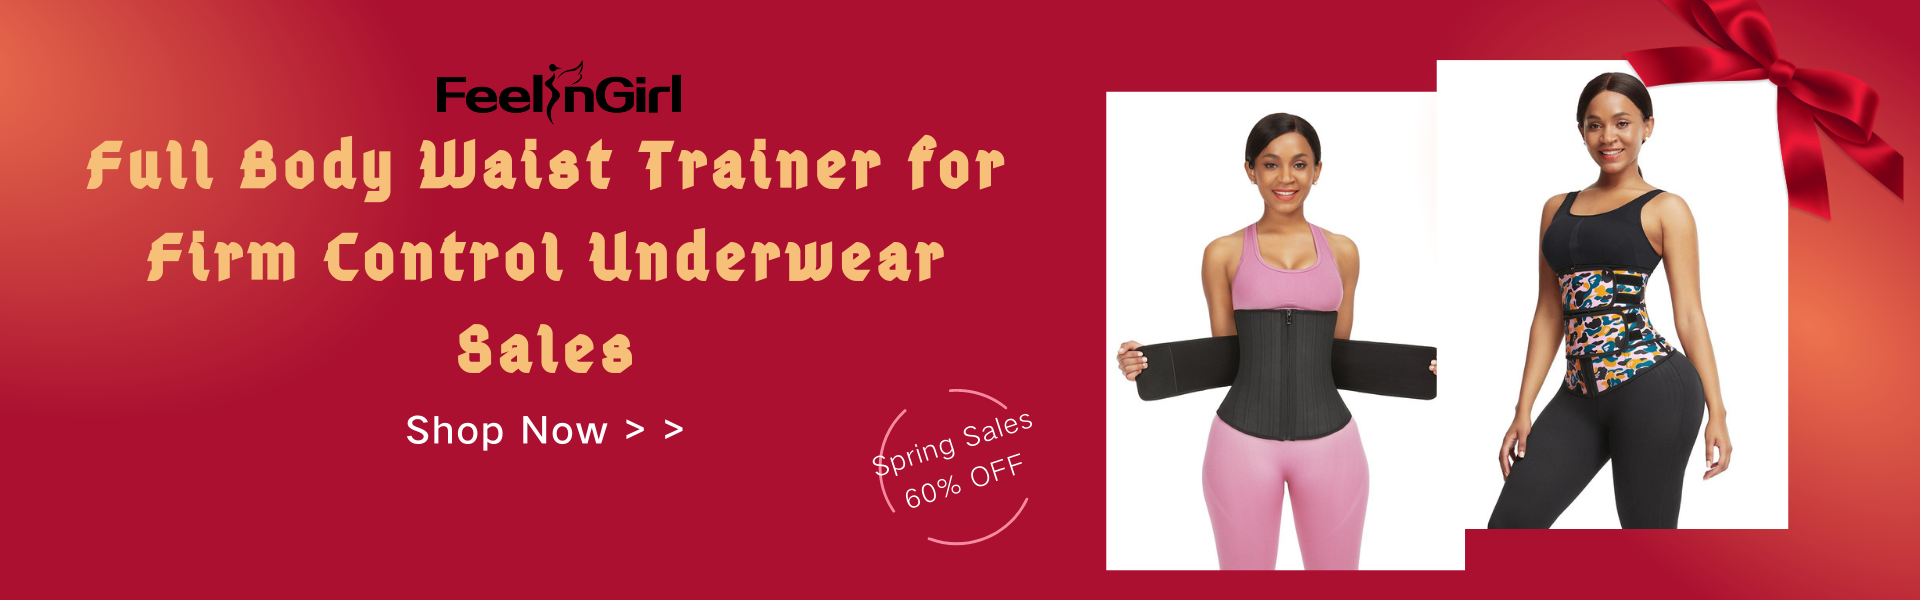 Full Body Waist Trainer for Firm Control Underwear Sales